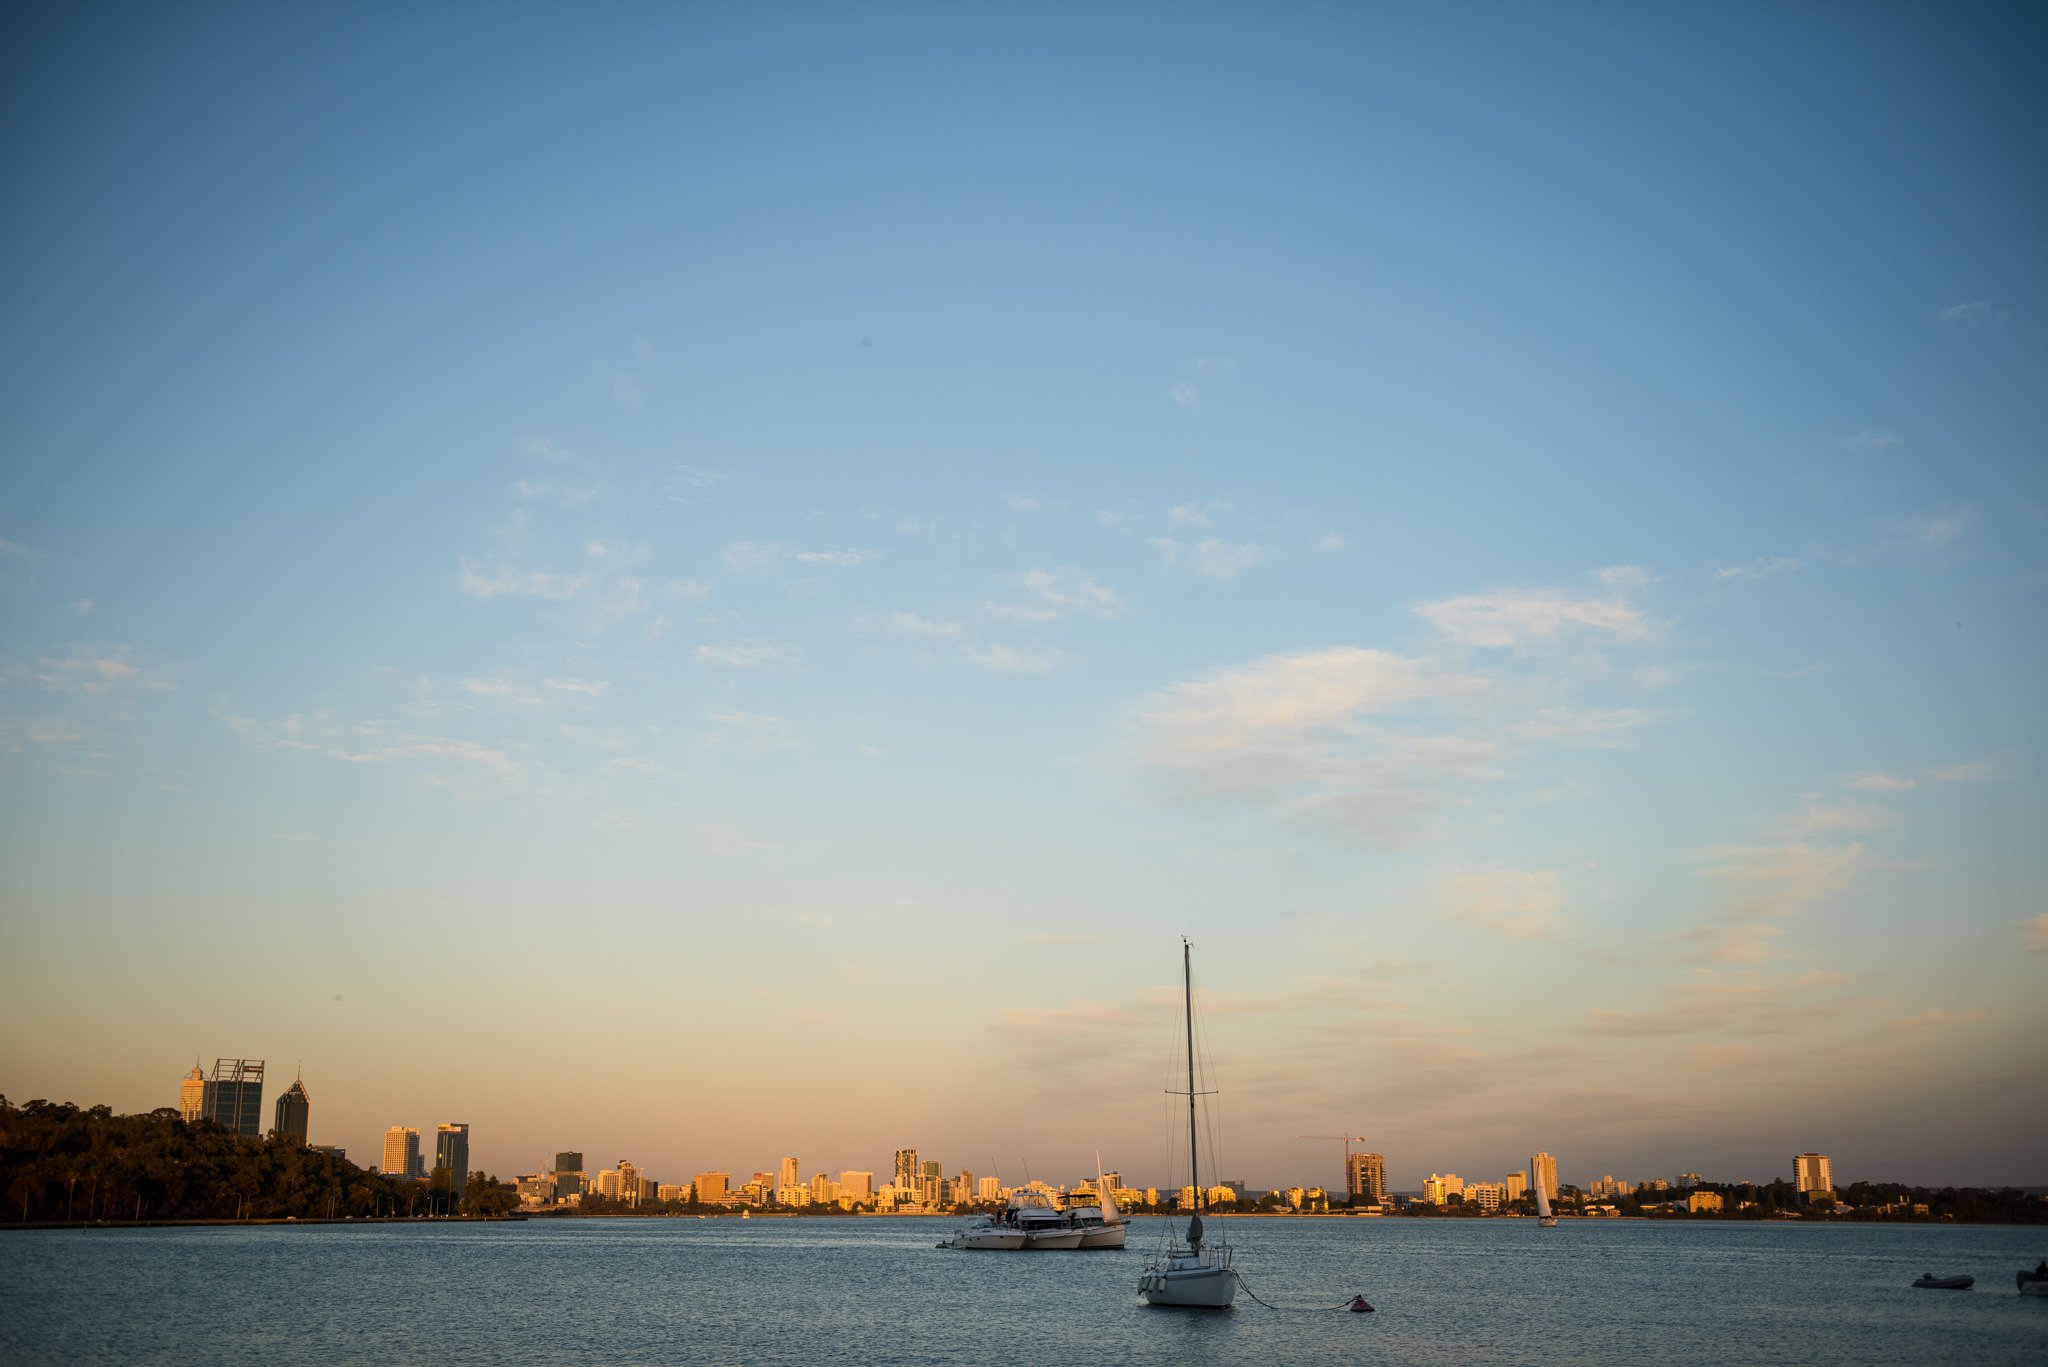 sunset over Perth from Matilda Bay